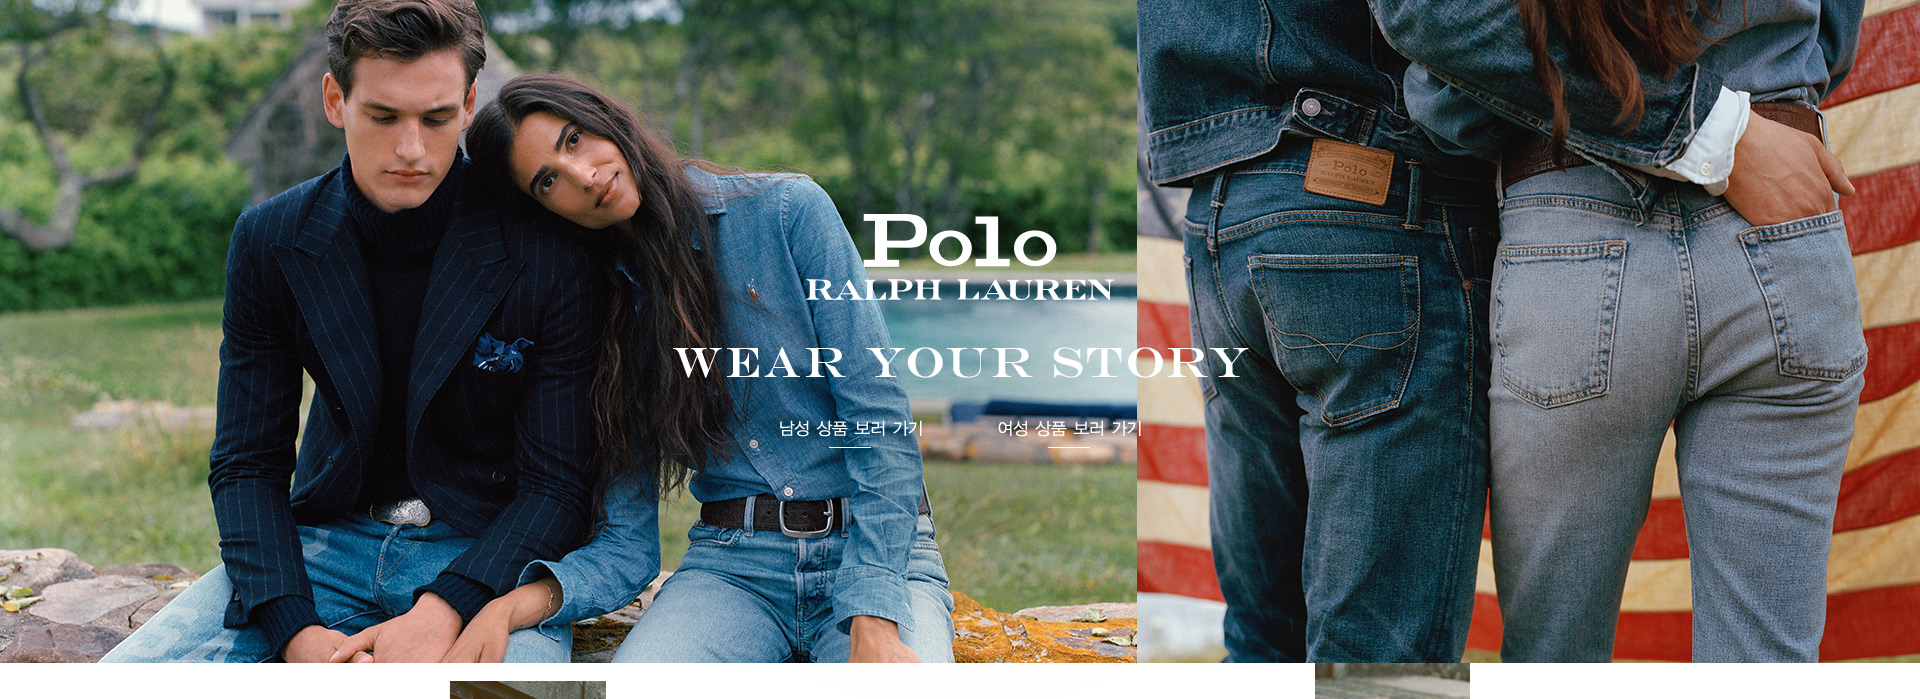 [POLO RALPH LAUREN] WEAR YOUR STORY